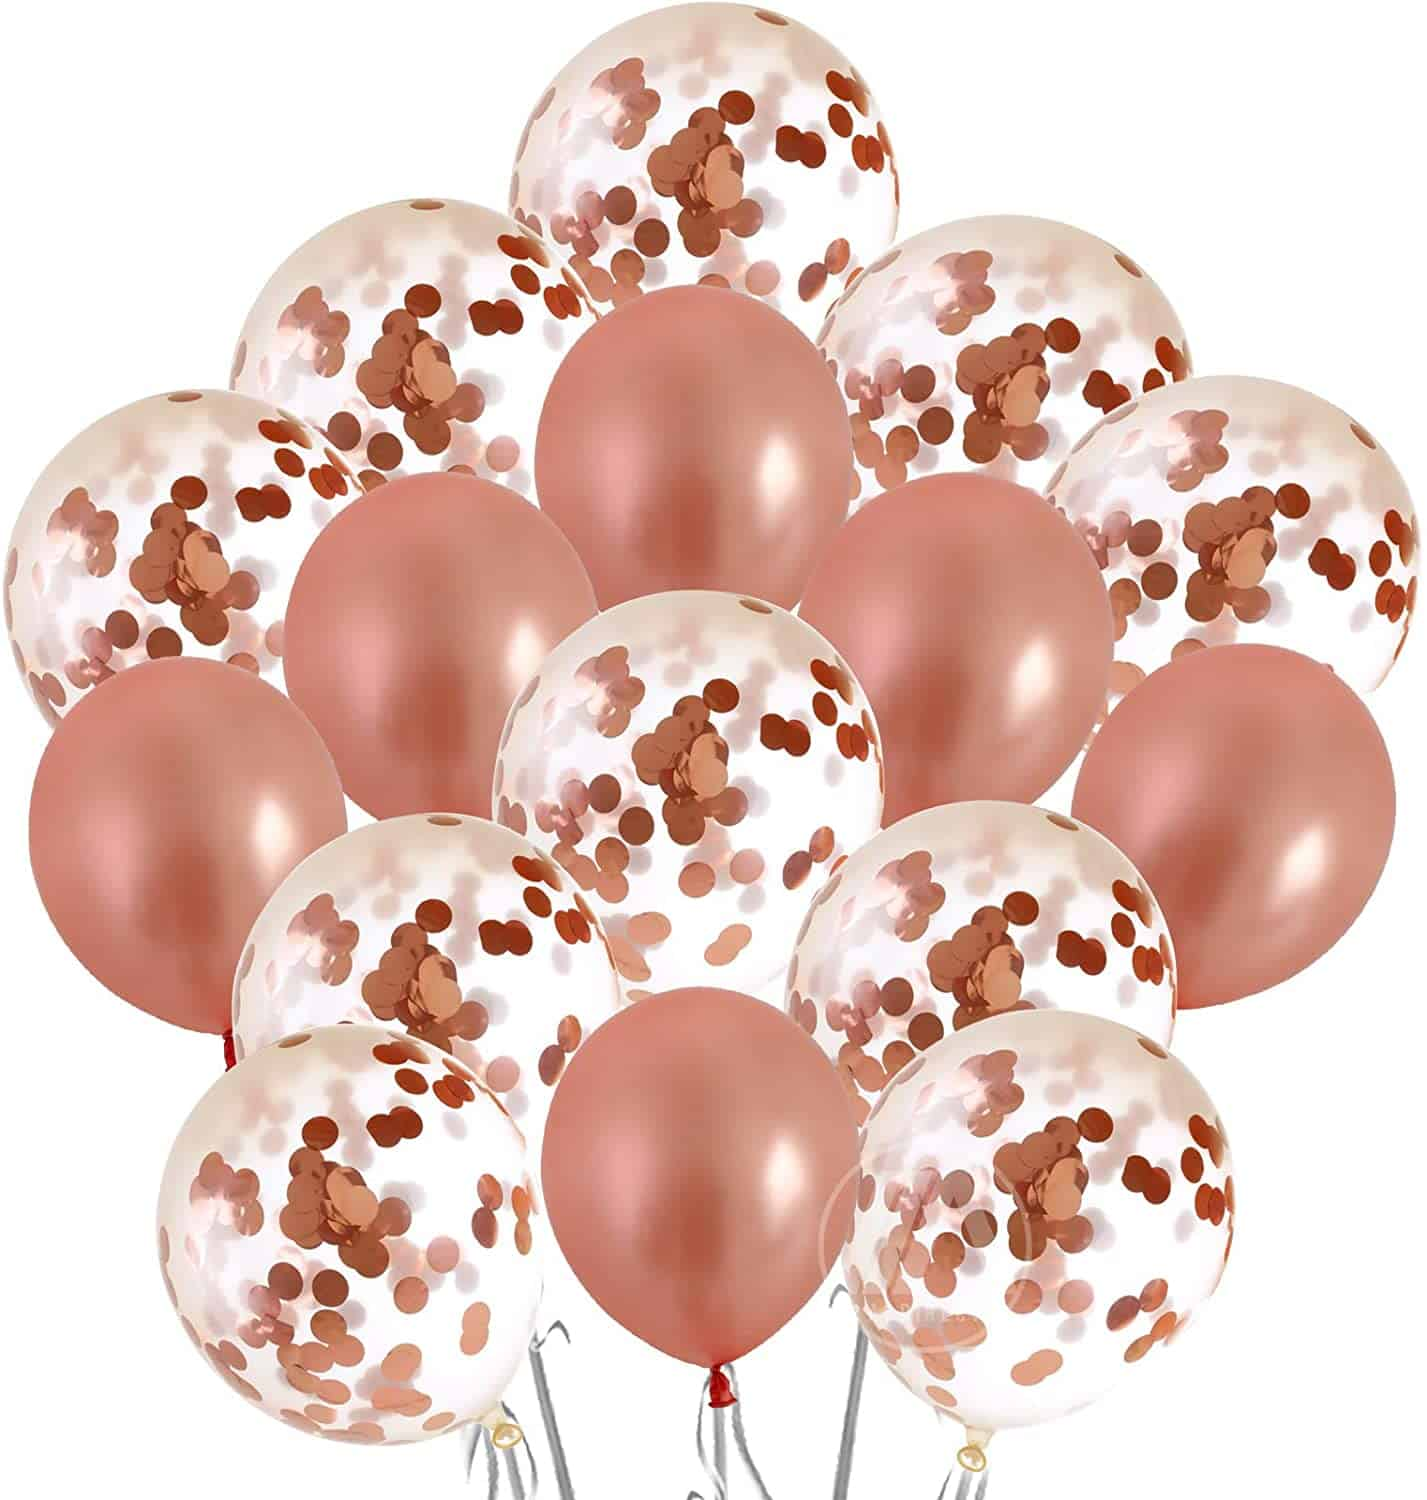 Rose Gold Balloons and Party Decorations for $5.70 (Reg. $18.99)